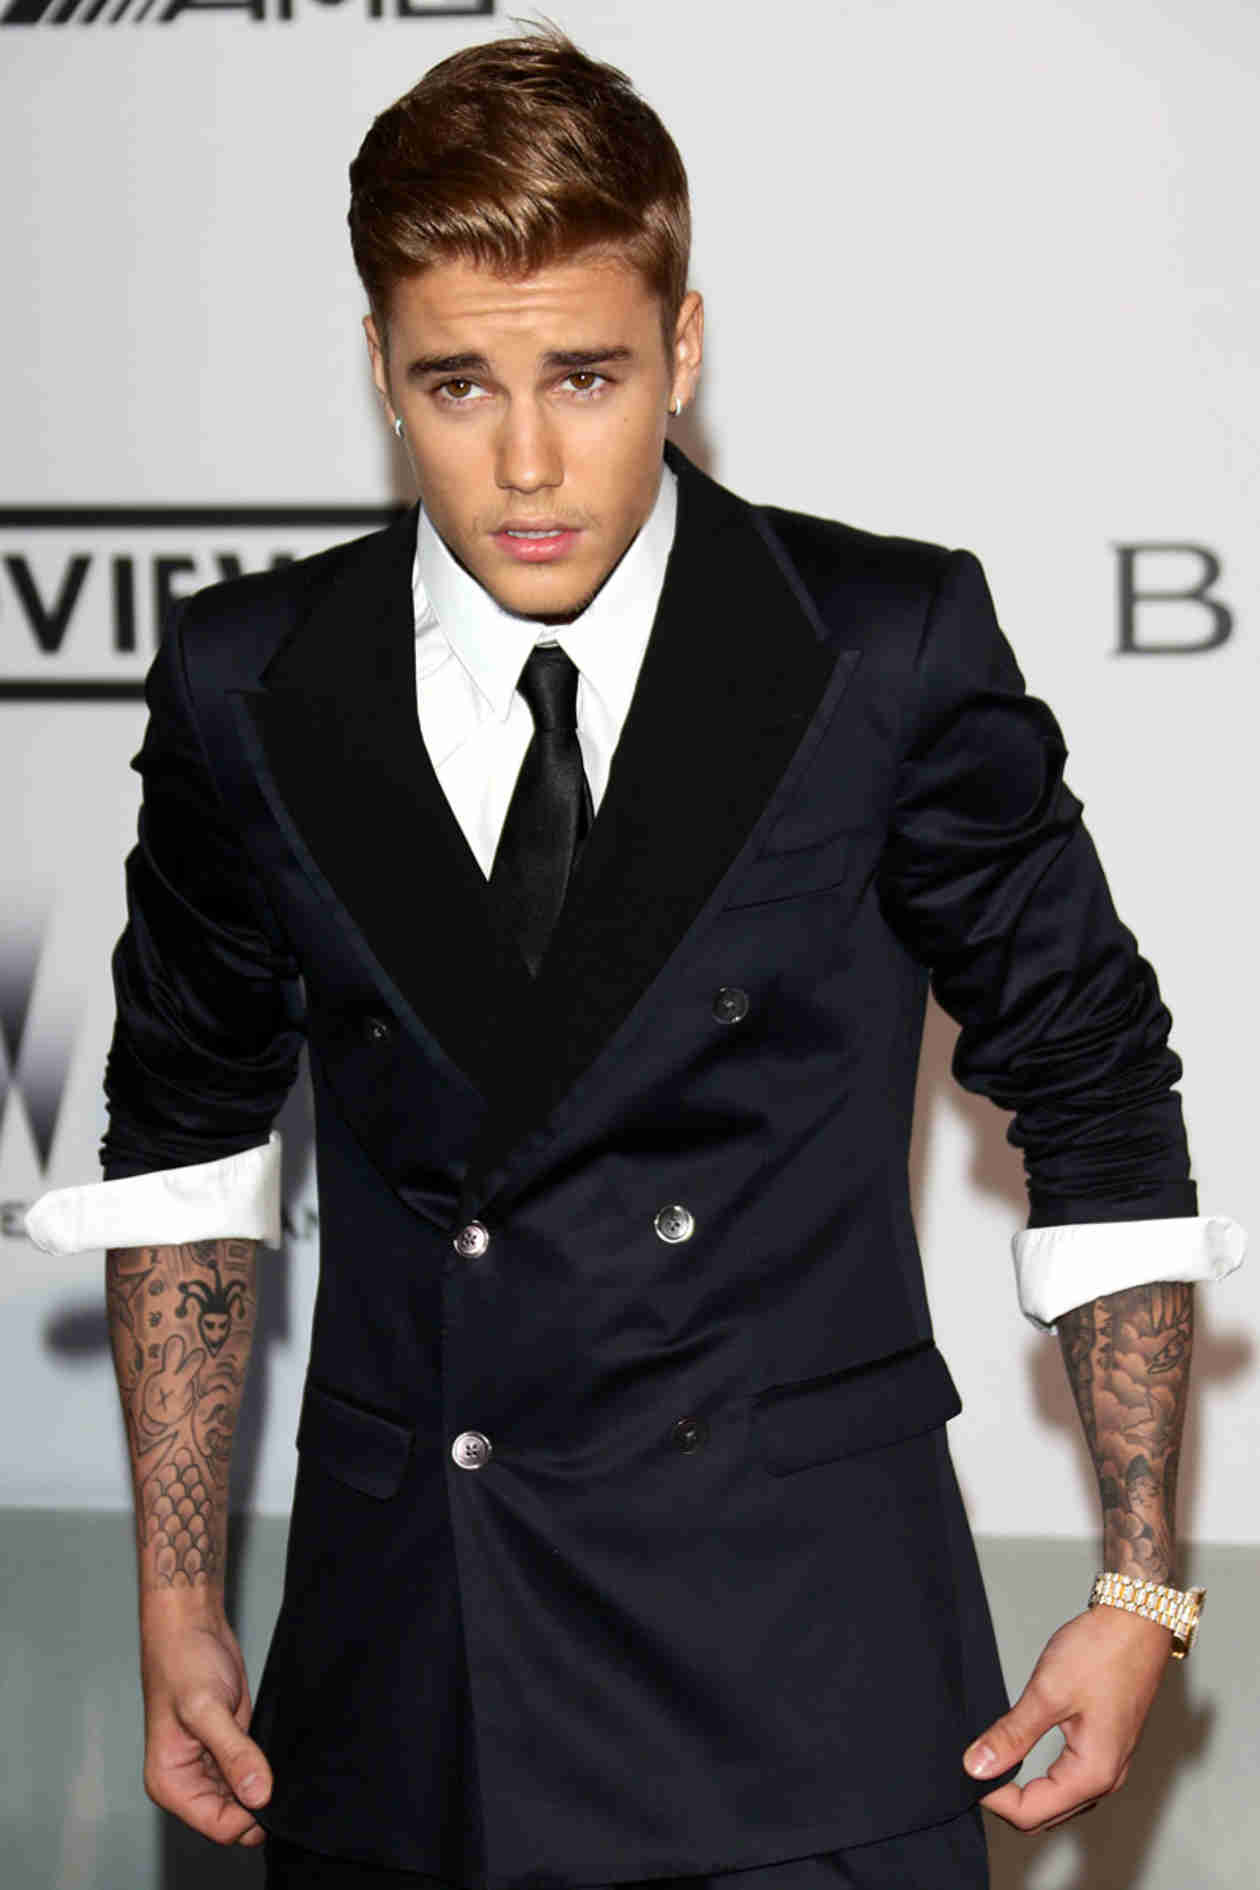 Justin Bieber Compares Himself to Princess Diana After Rear-Ended by Paparazzi (VIDEO)